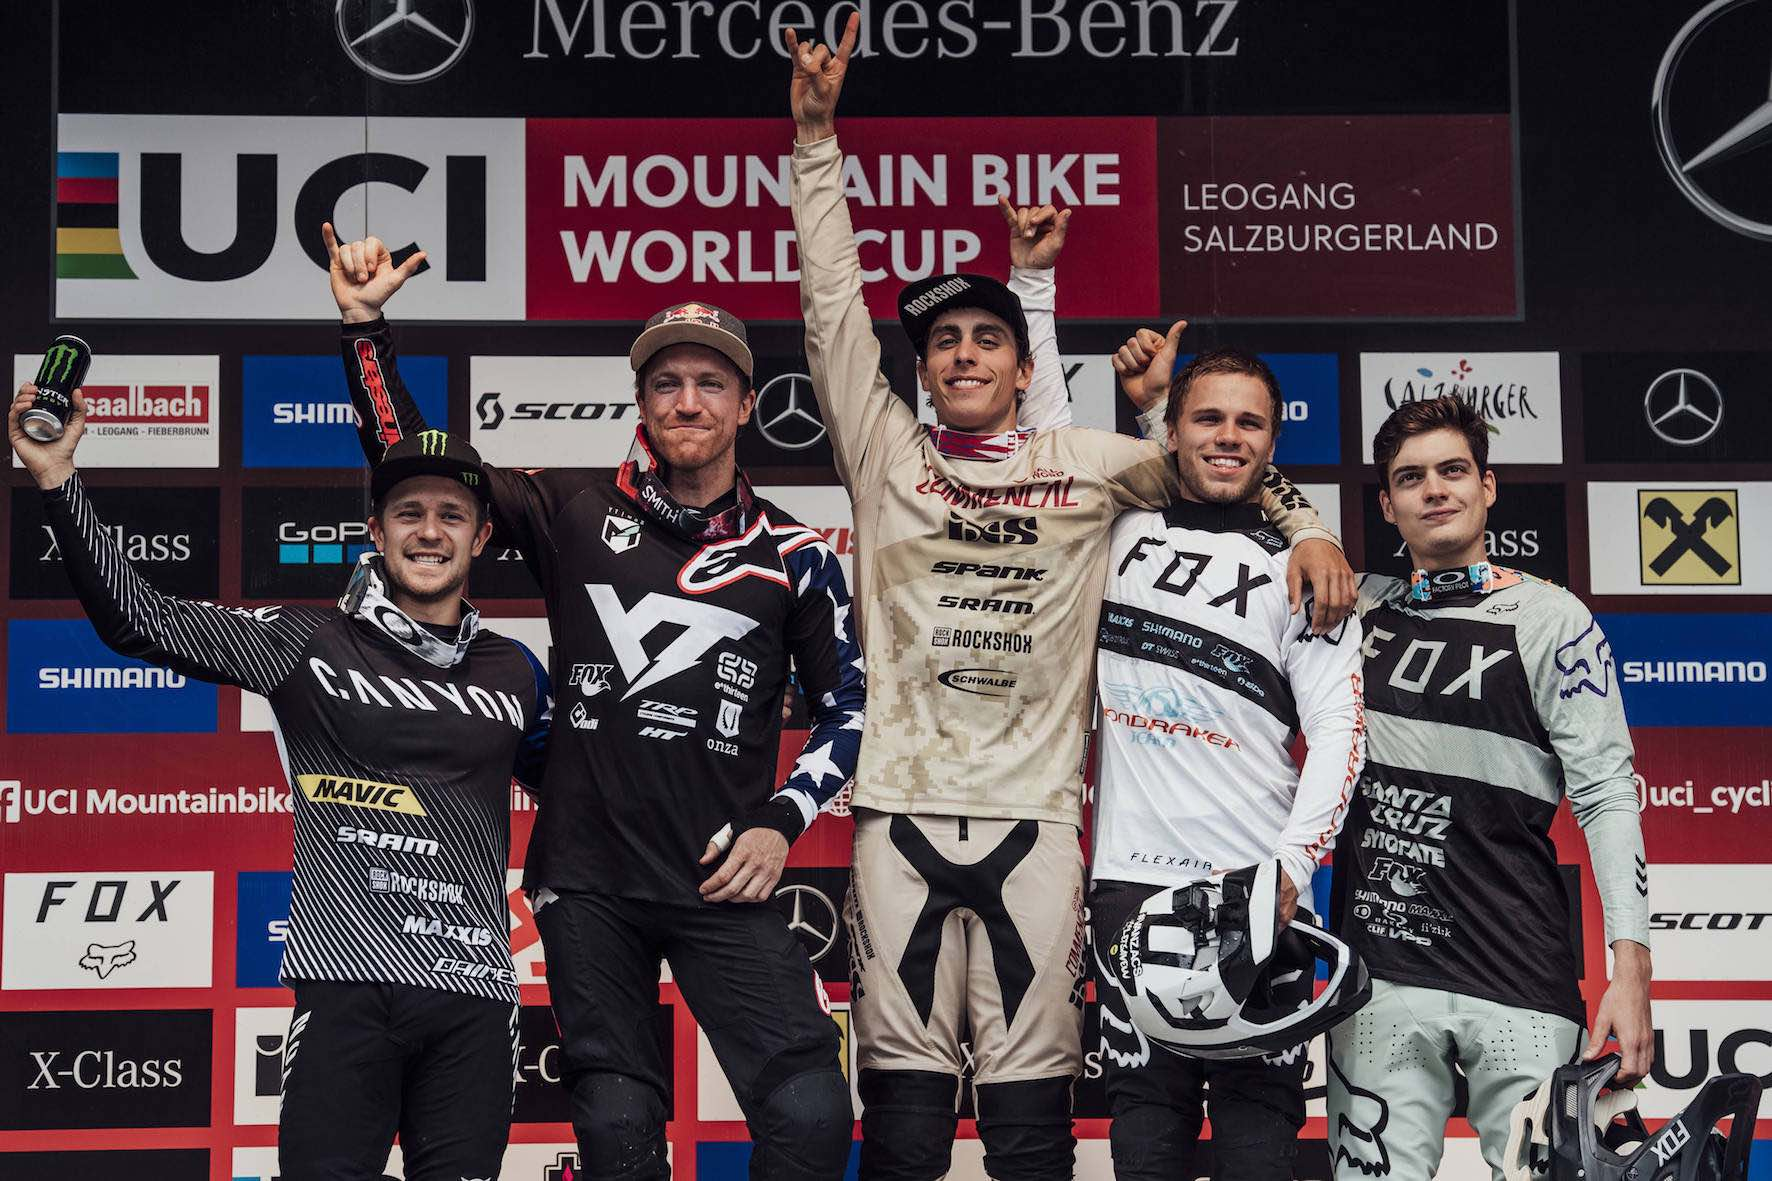 The 2018 Leogang, Austria Downhill MTB World Cup Men's podium